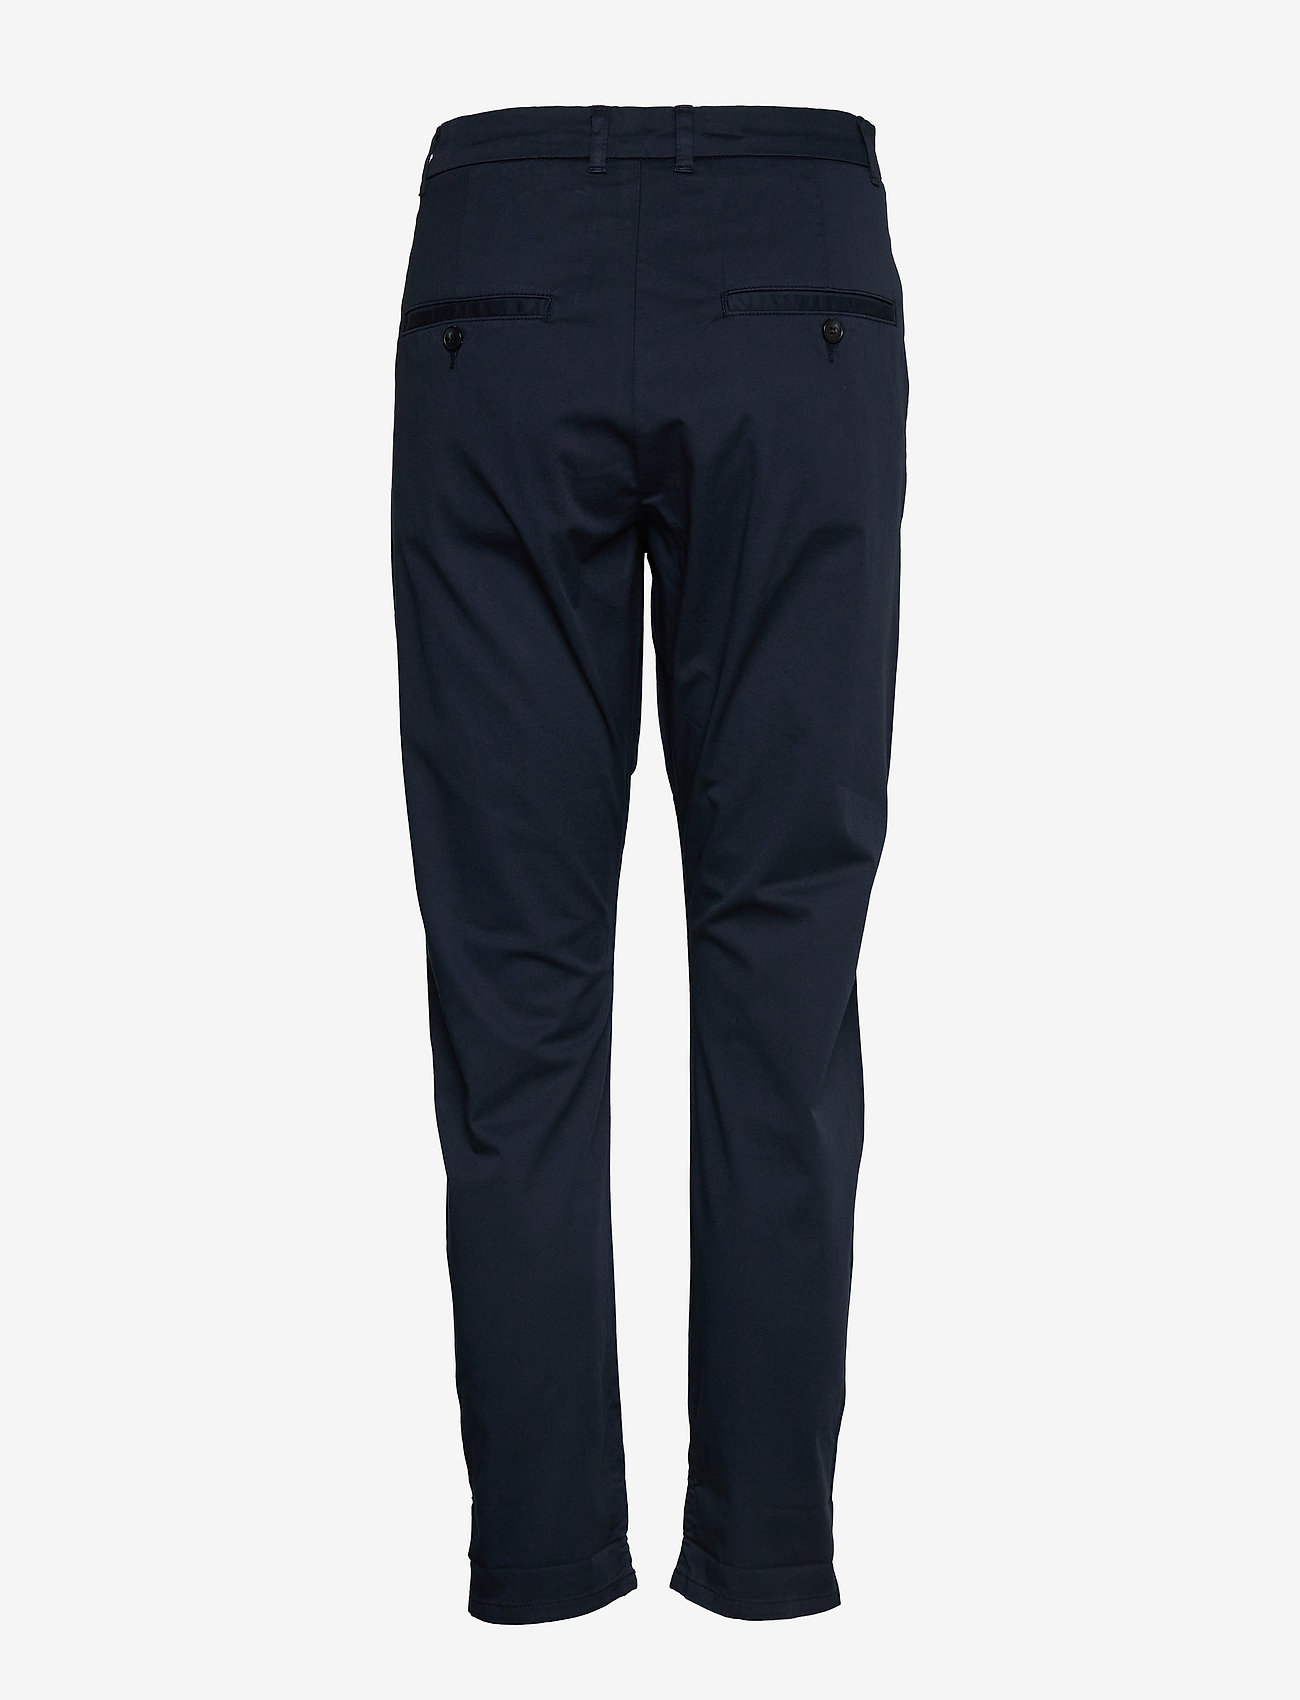 News Edit Trouser   - Hope -  Women's Trousers Low Cost